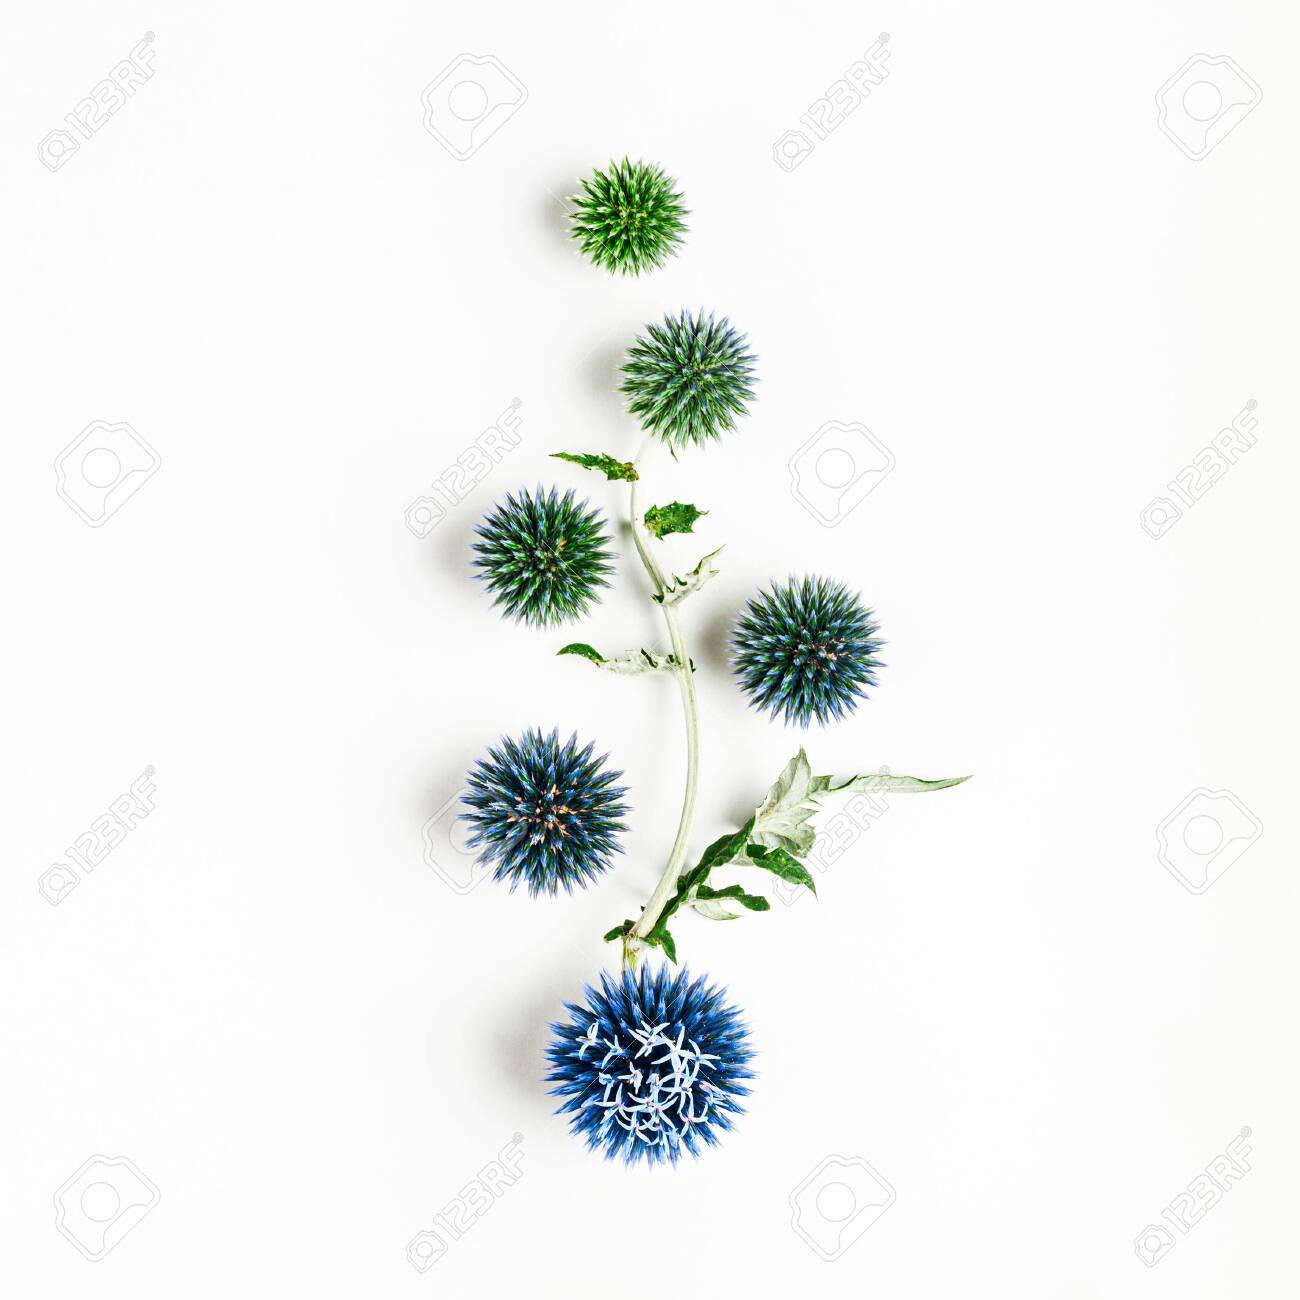 Blue Thistle Flowers And Leaves Composition Flower Arrangement Stock Photo Picture And Royalty Free Image Image 129495399